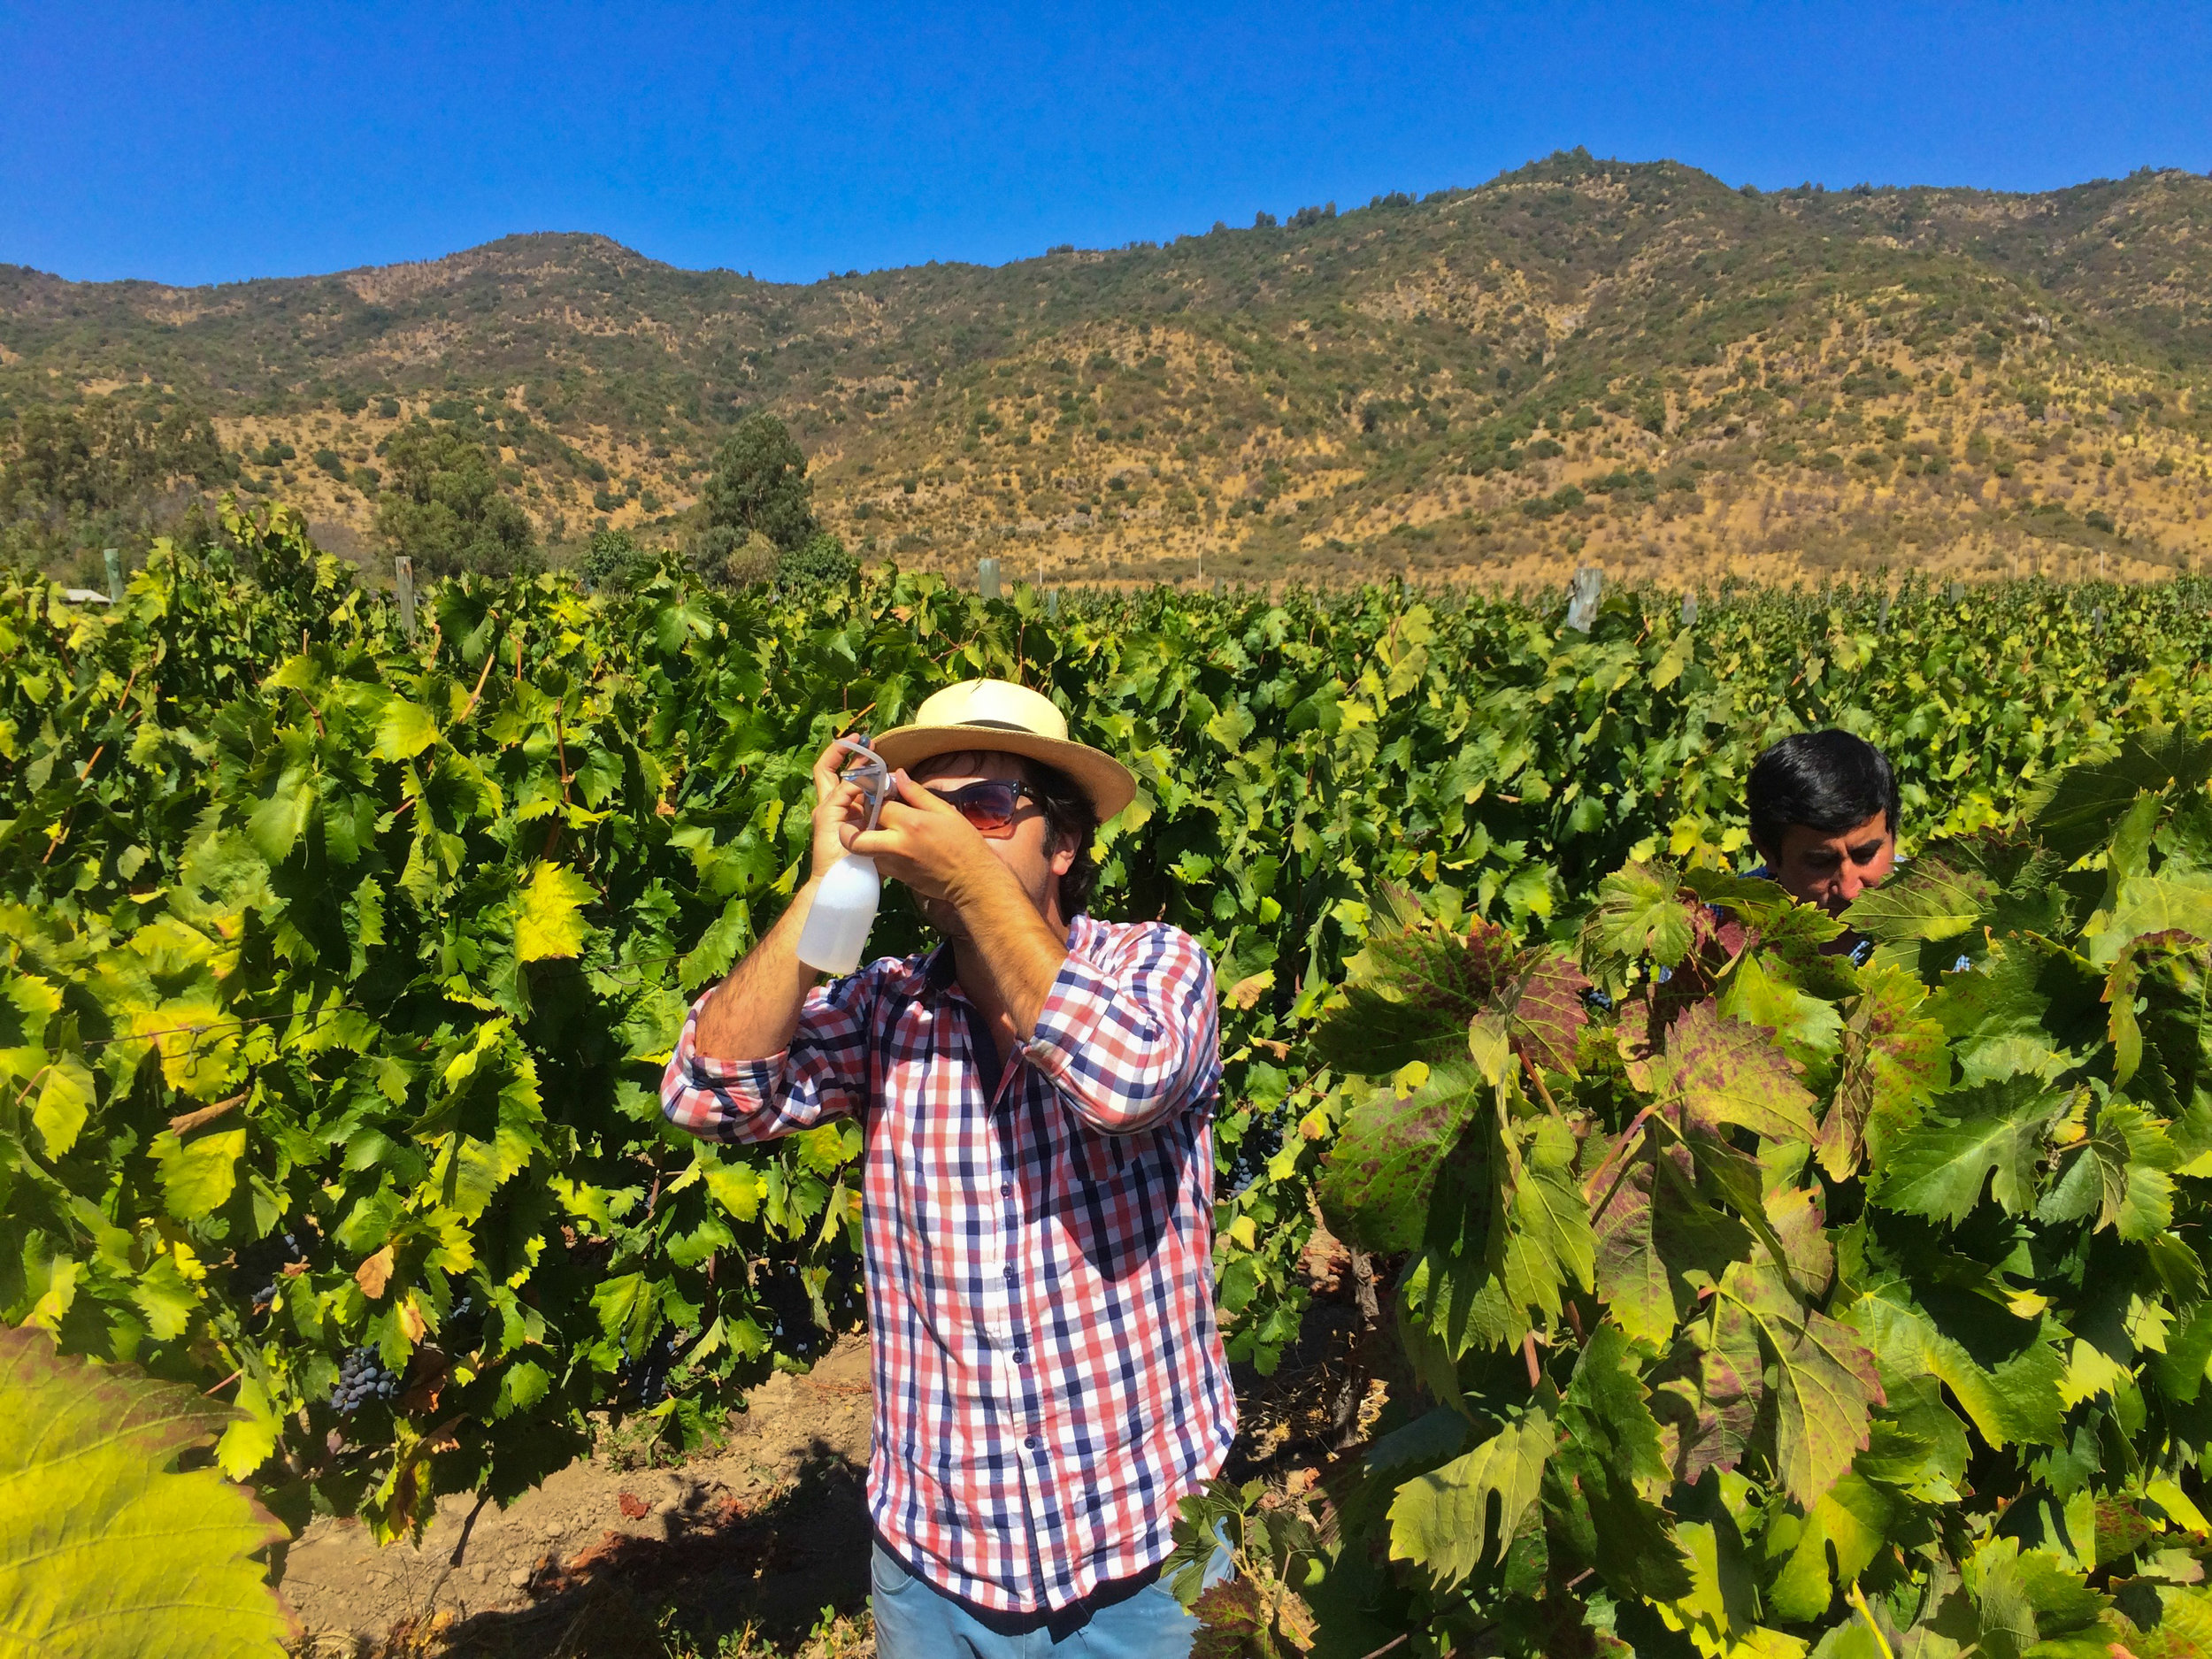 Pancho's checking the sugar ripeness of the carignan